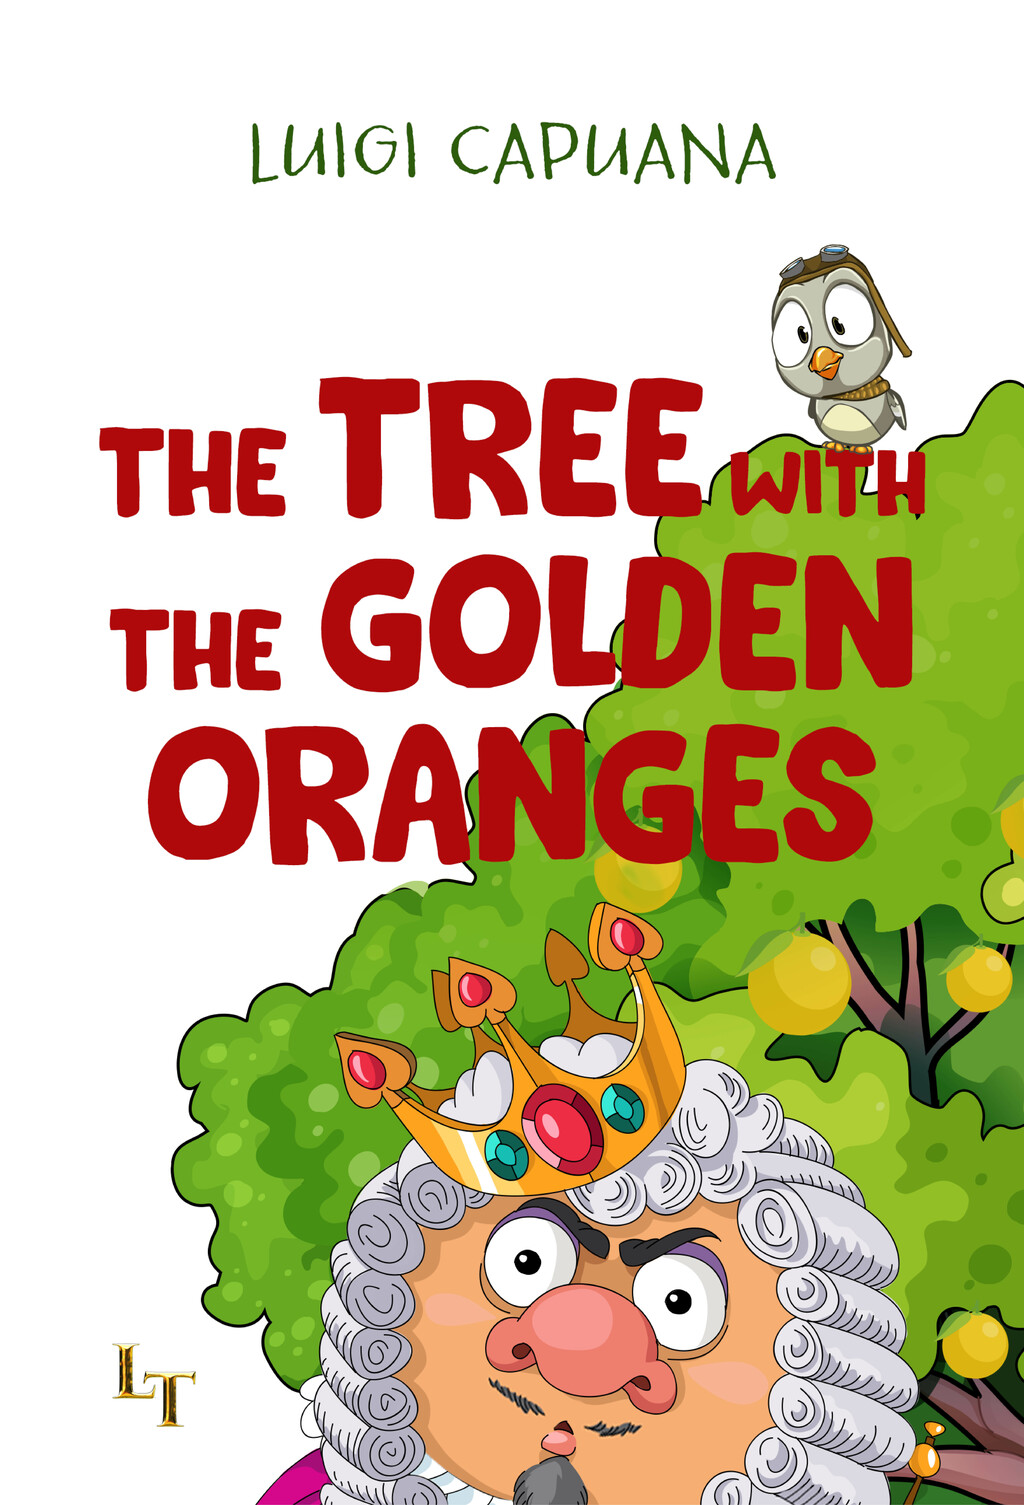 The Tree With the Golden Oranges by Luigi Capuana - Land of Tales